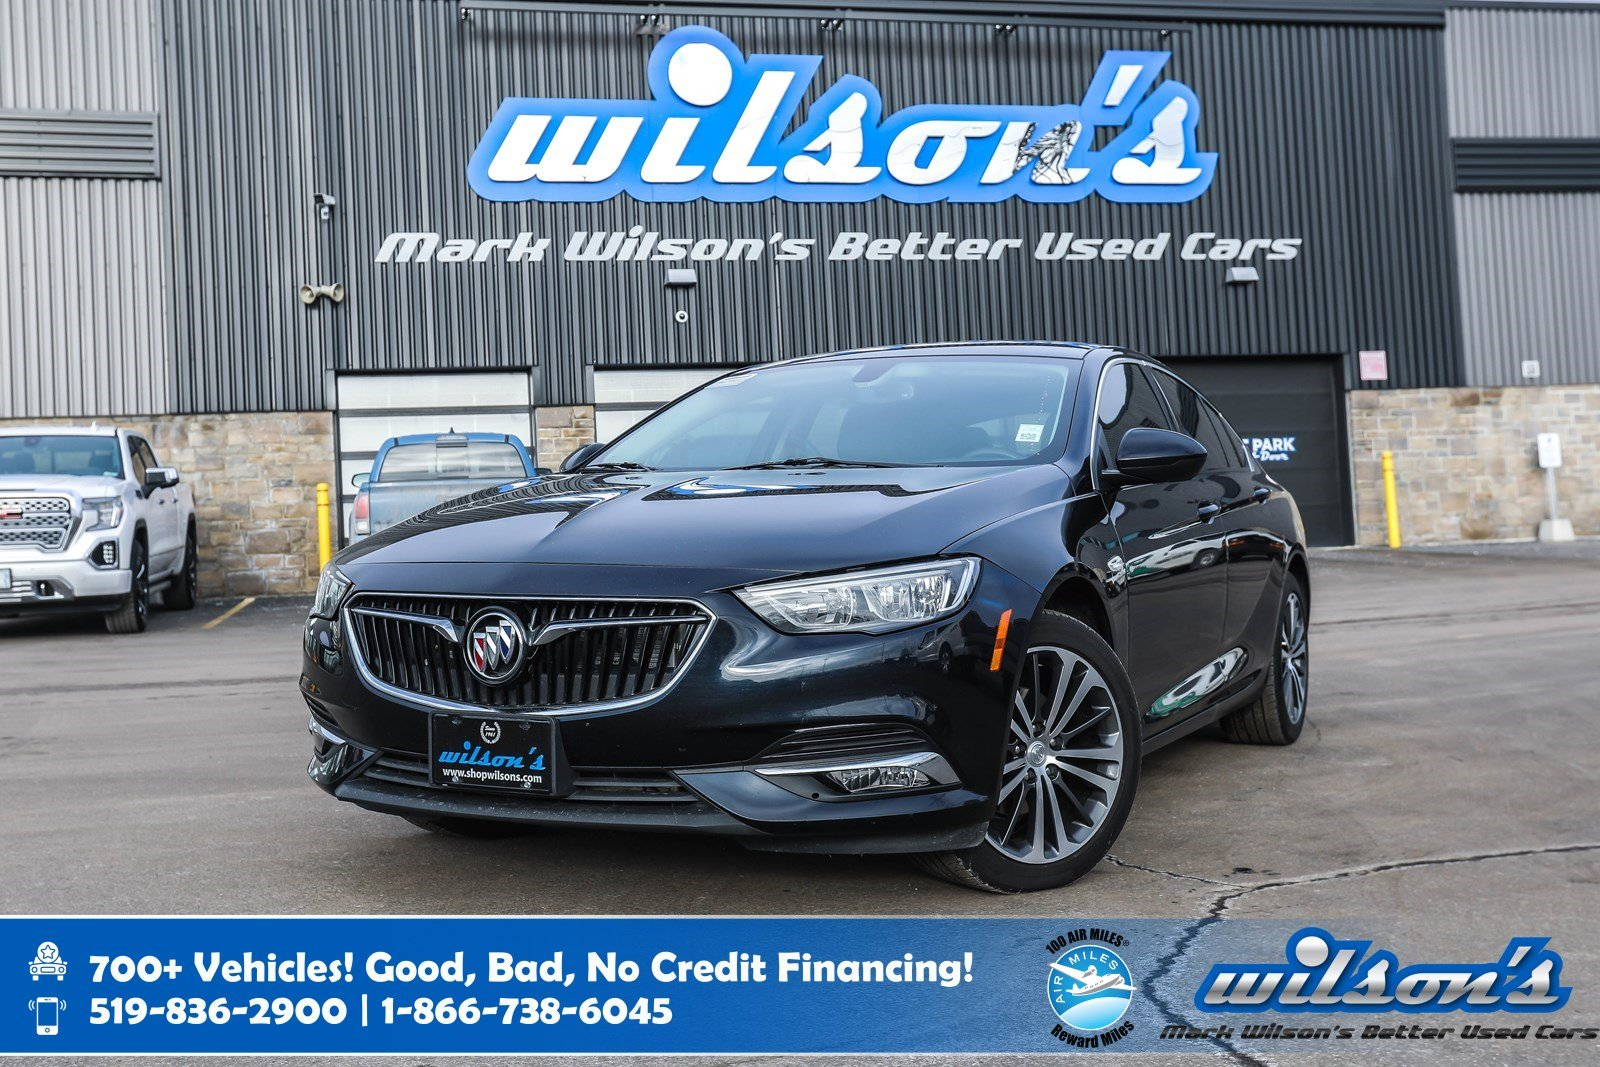 Certified Pre-Owned 2019 Buick Regal Preferred II, Heated Steering, Leather Trim, Rear Camera, Bluetooth, Remote Start & More